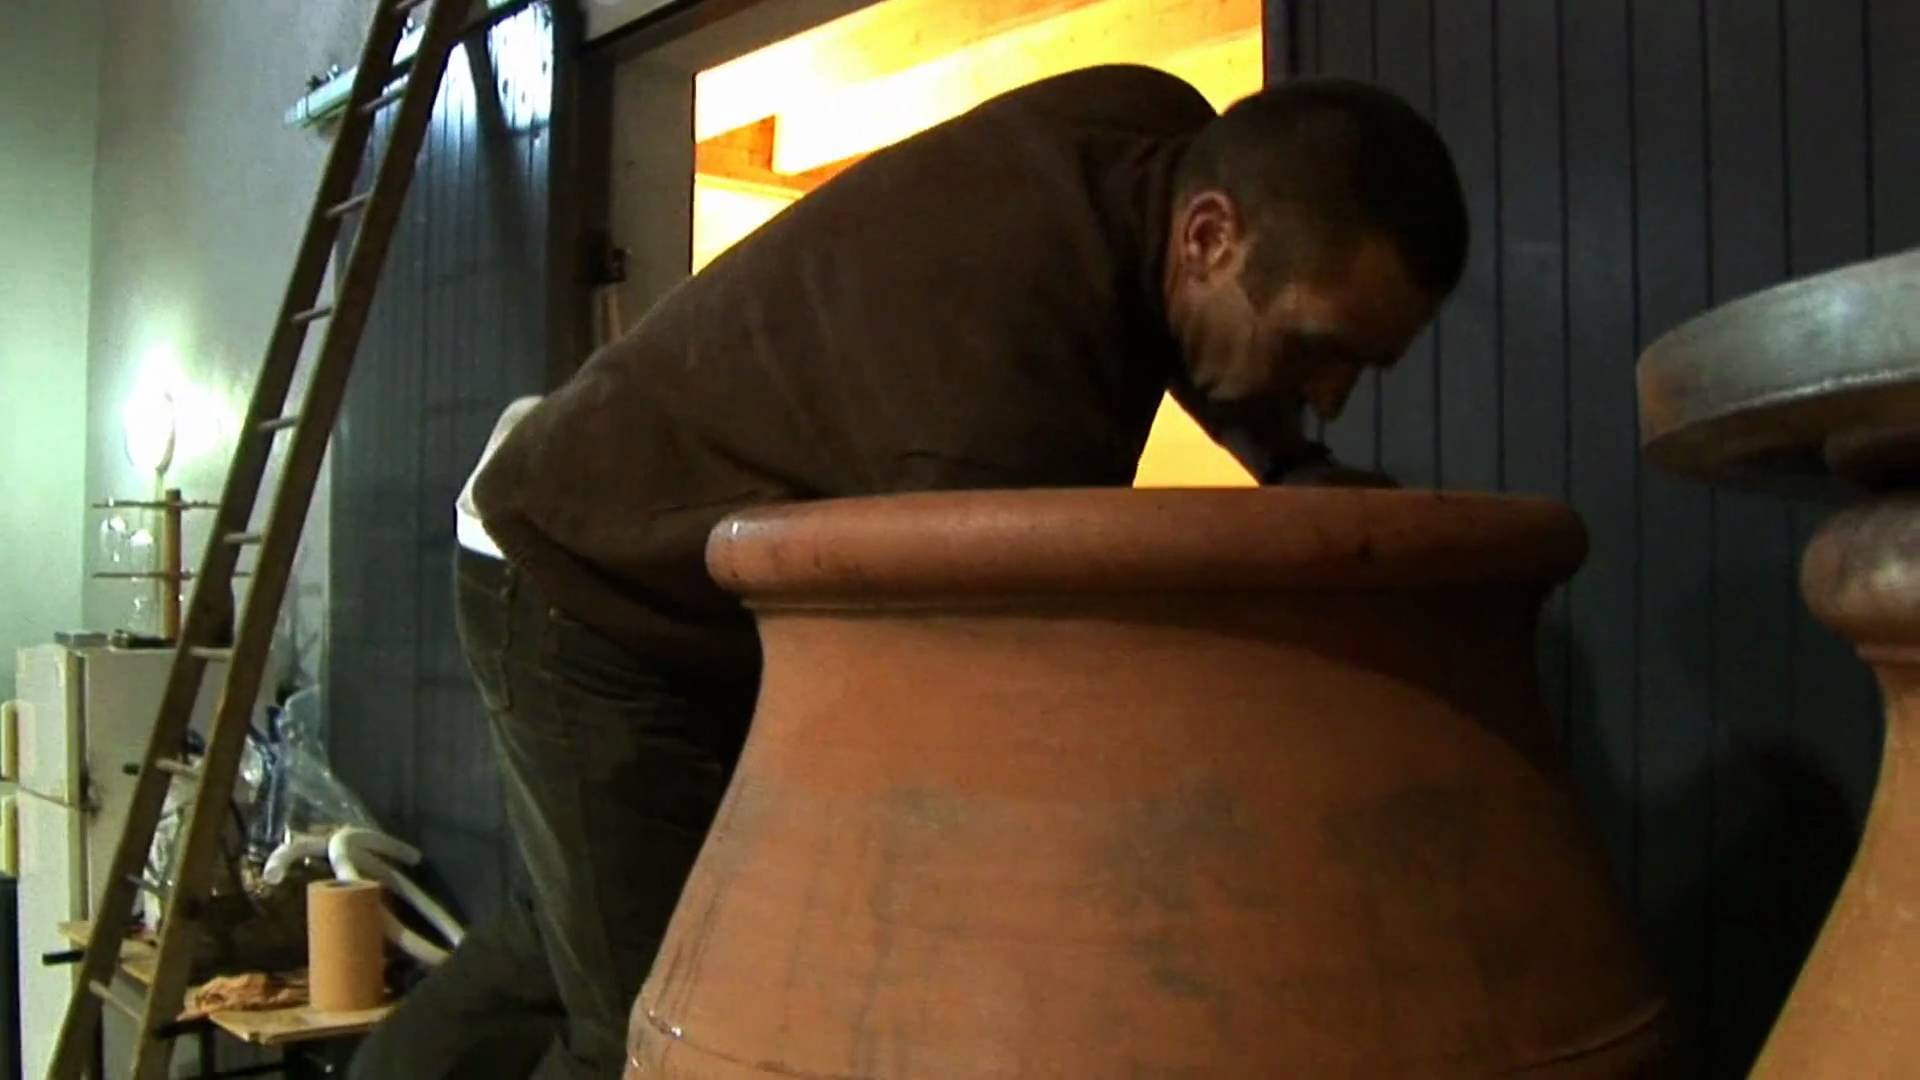 Jean-Claude Lapalu in his amphora